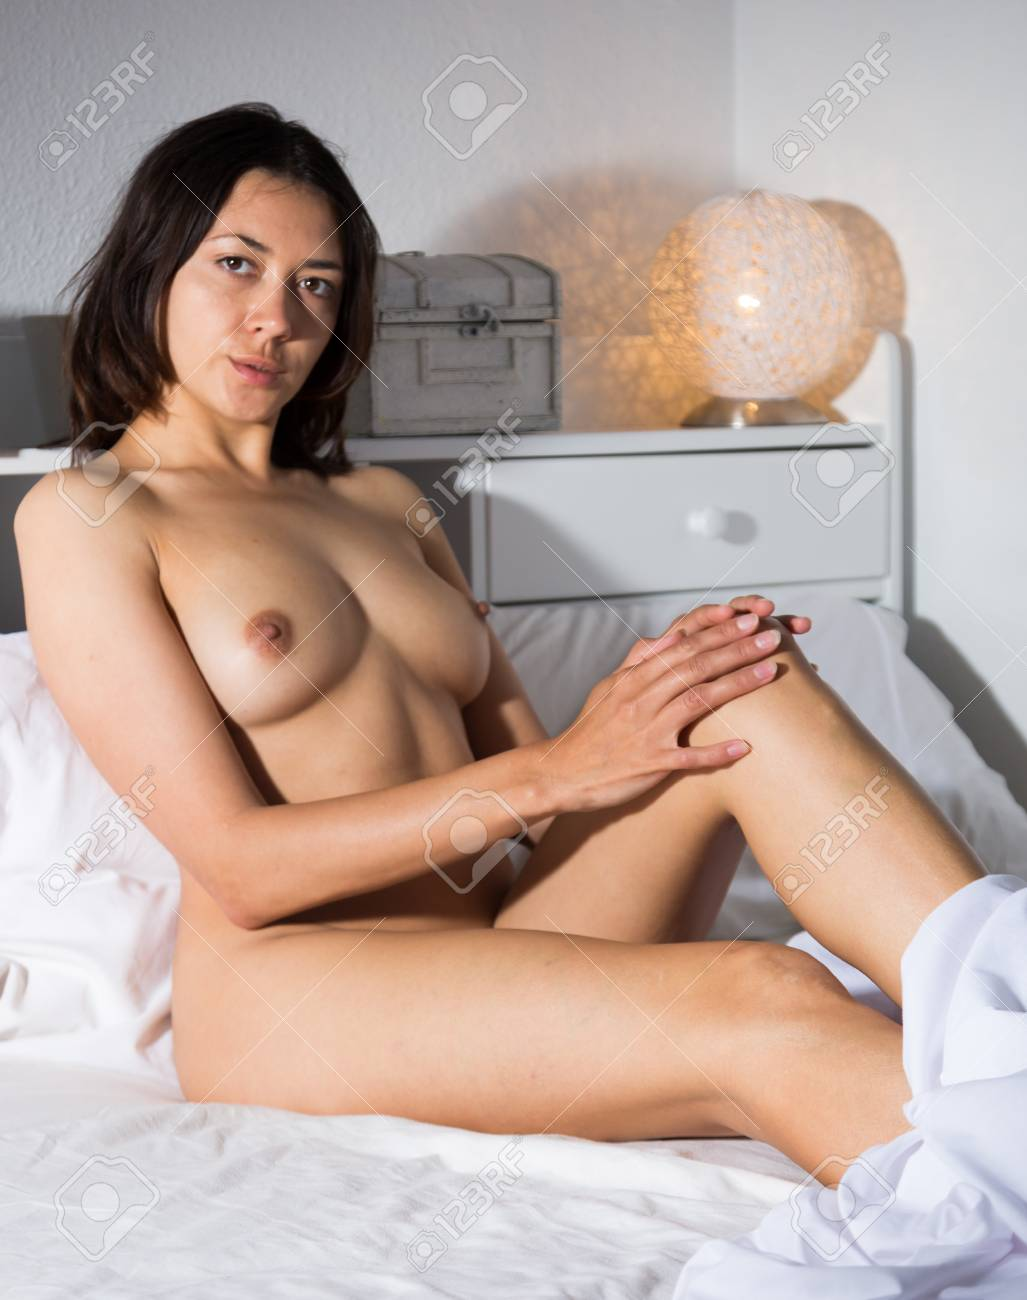 Lady nude bed sexy on